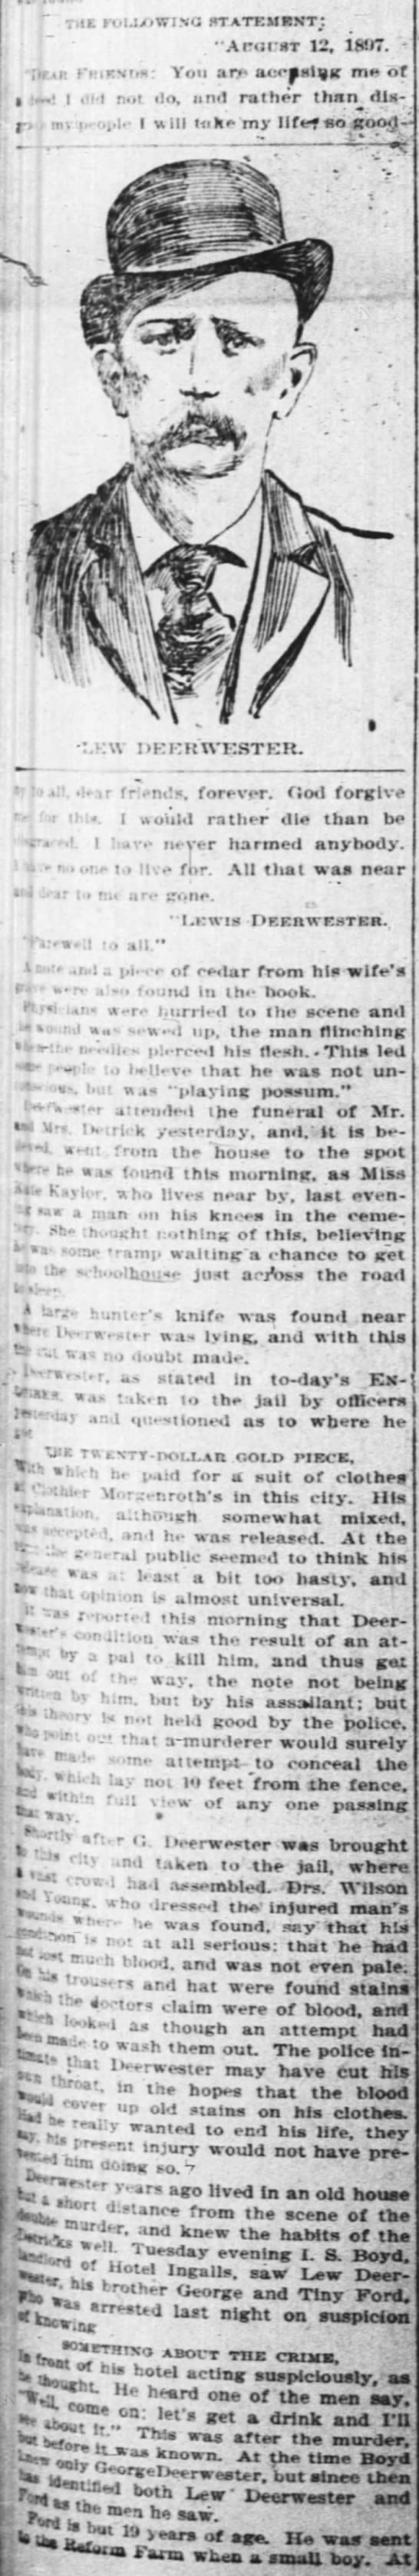 GRAVES of His Wife and Child The Cincinnati Enquirer 14 Aug 1897 2 -